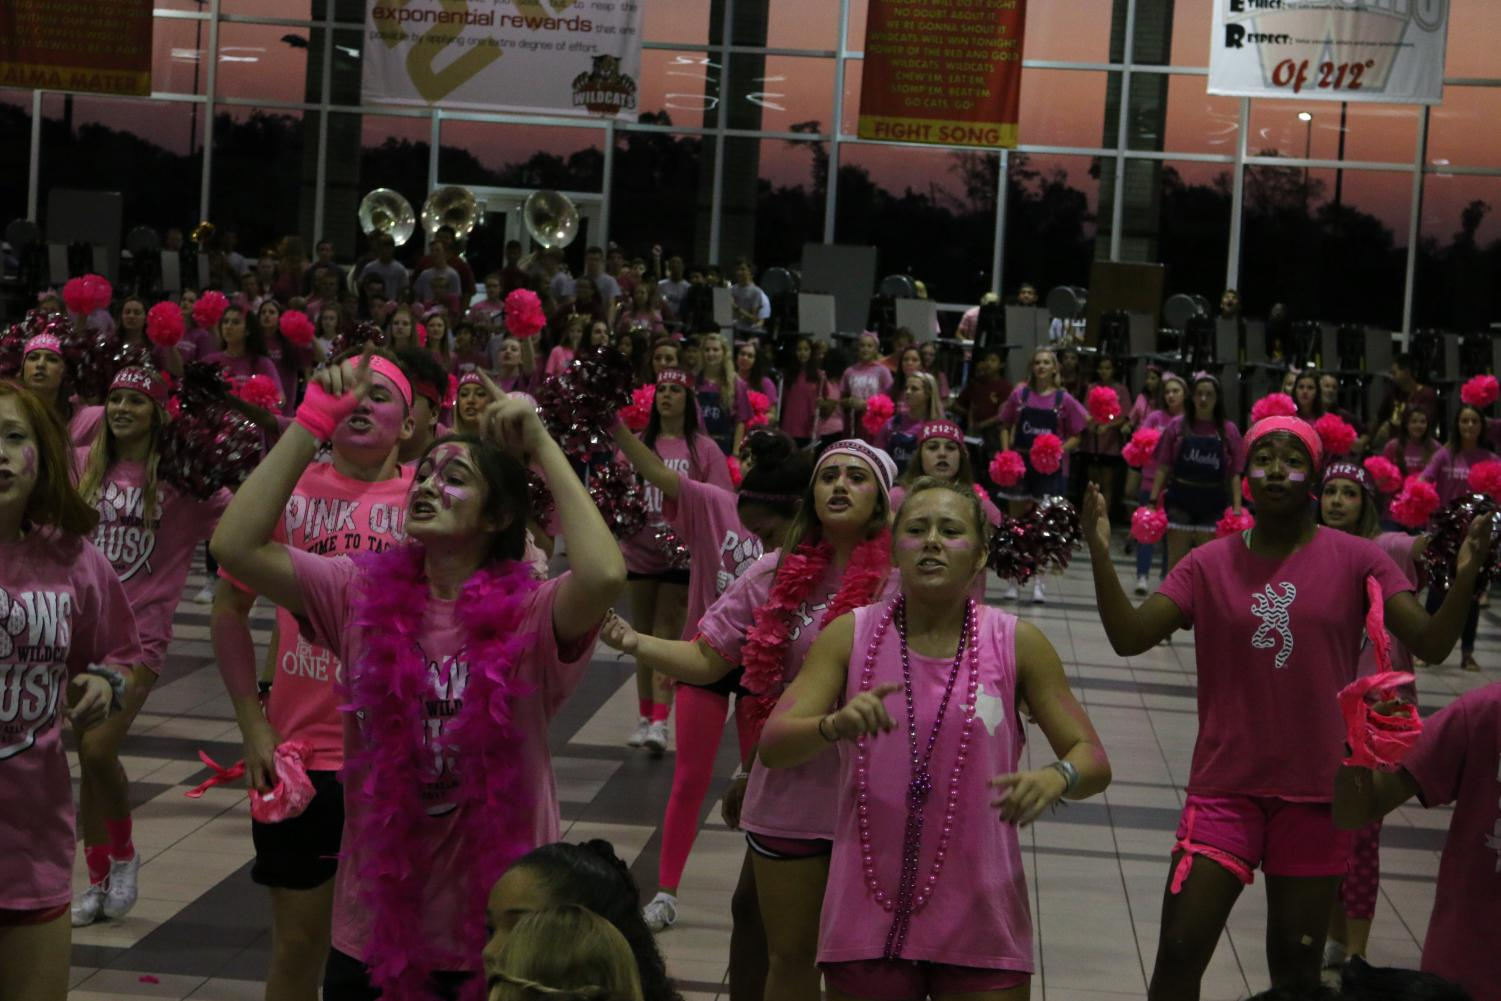 Pink+Out+Day.+Raise+money+for+breast+cancer+awareness+by+buying+a+Pink+Out+shirt+at+school+and+then+wear+everything+pink.